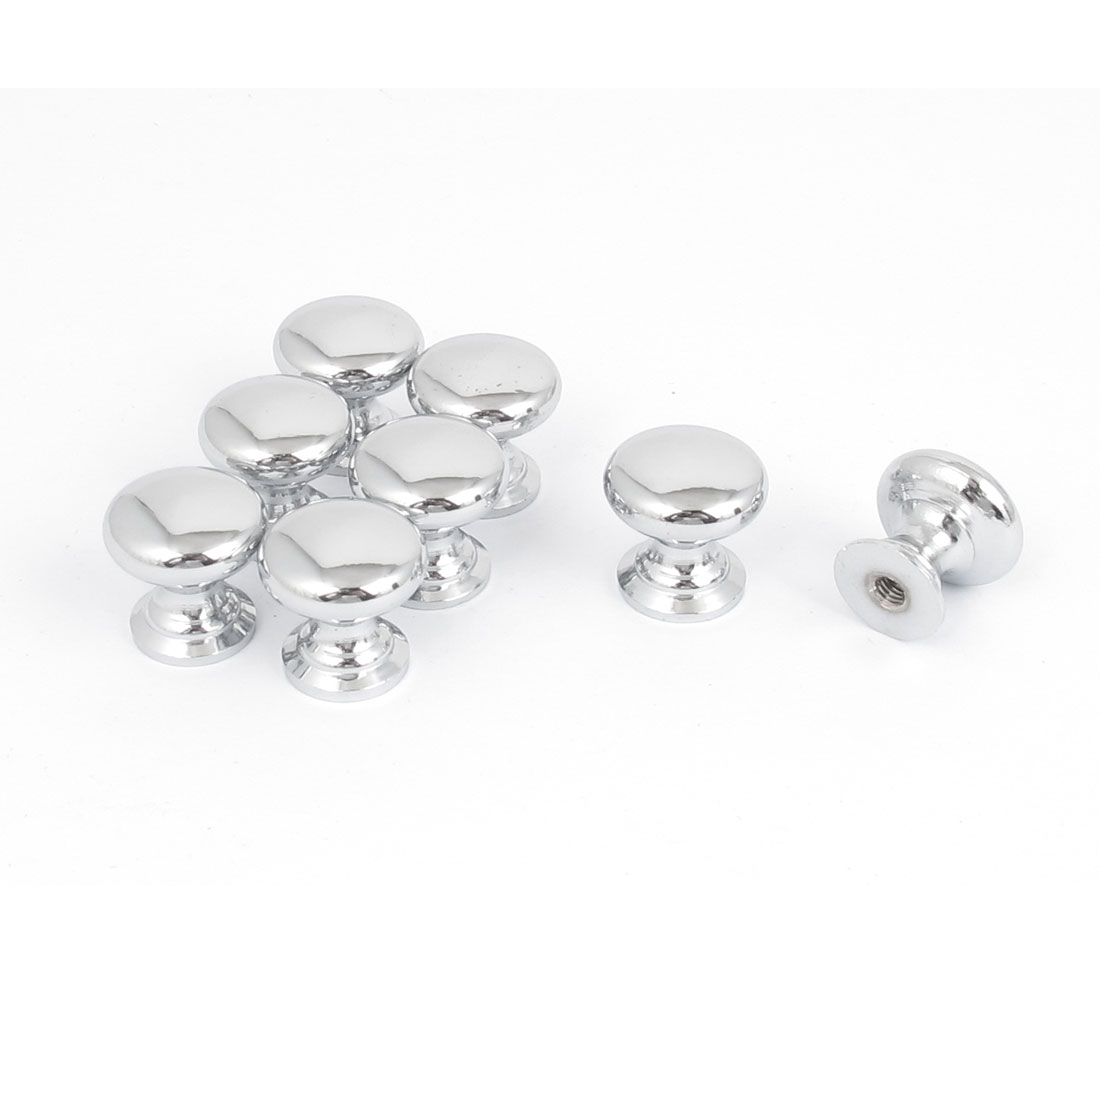 Furniture Drawer Cabinet Handle Round Pull Knob Silver Tone 18mm Dia 8 Pcs